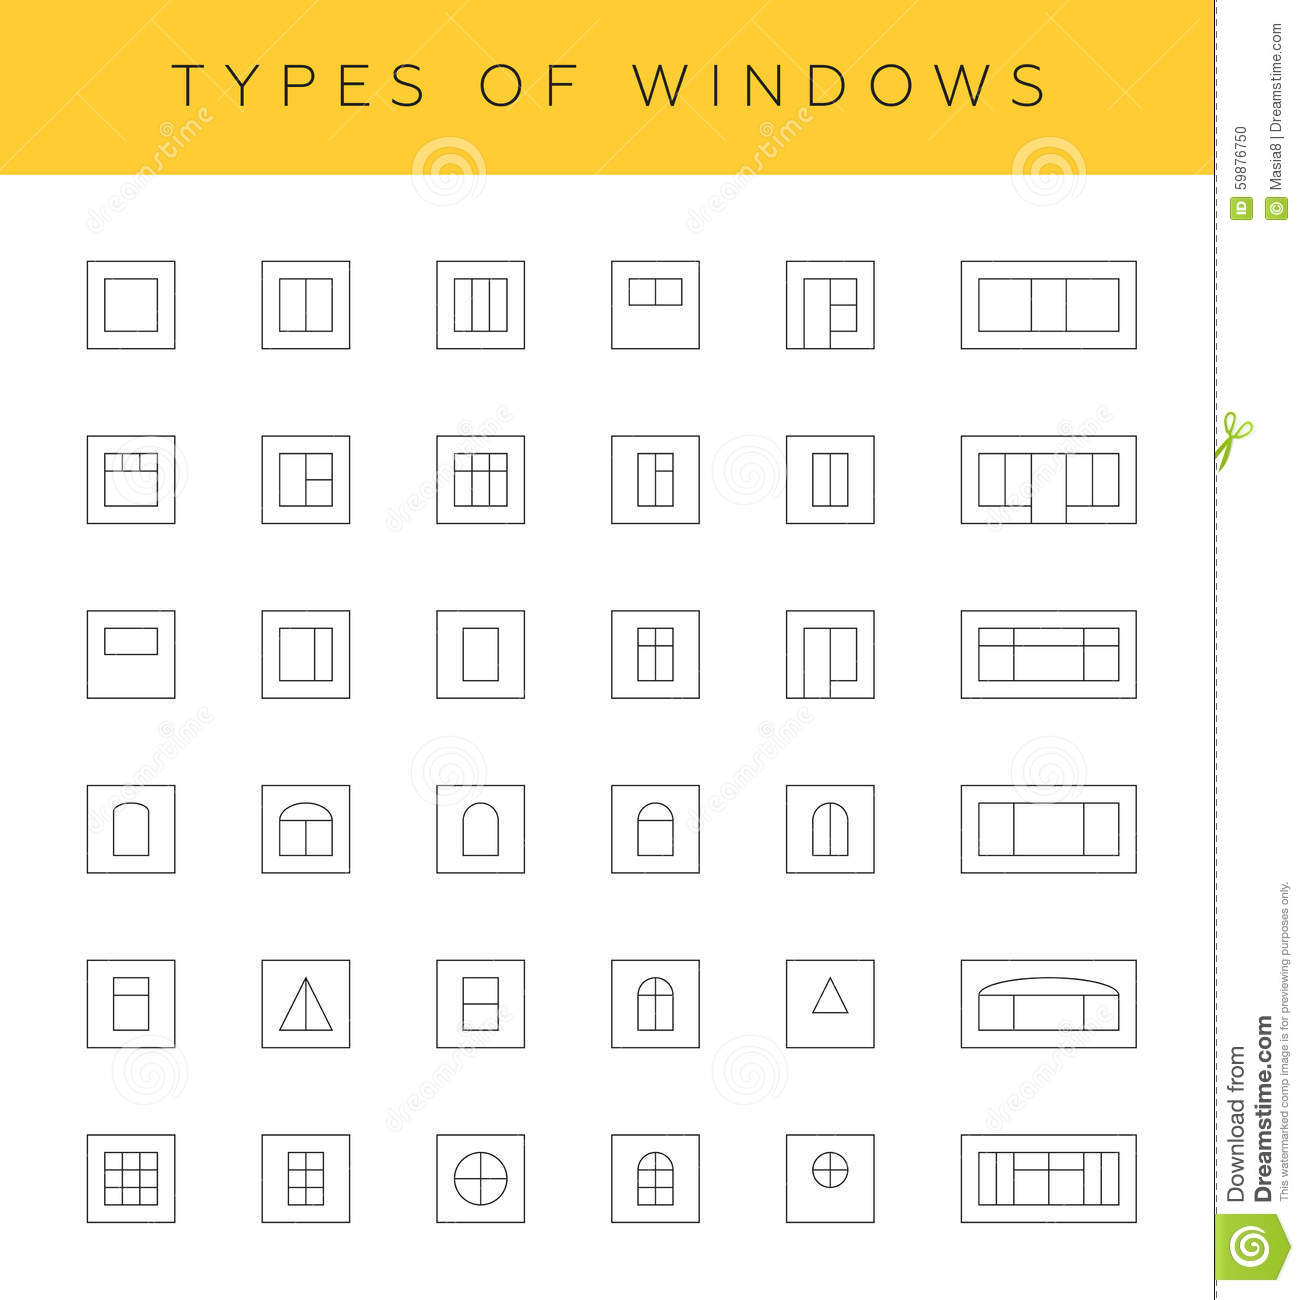 Window pane types - Types Of Windows